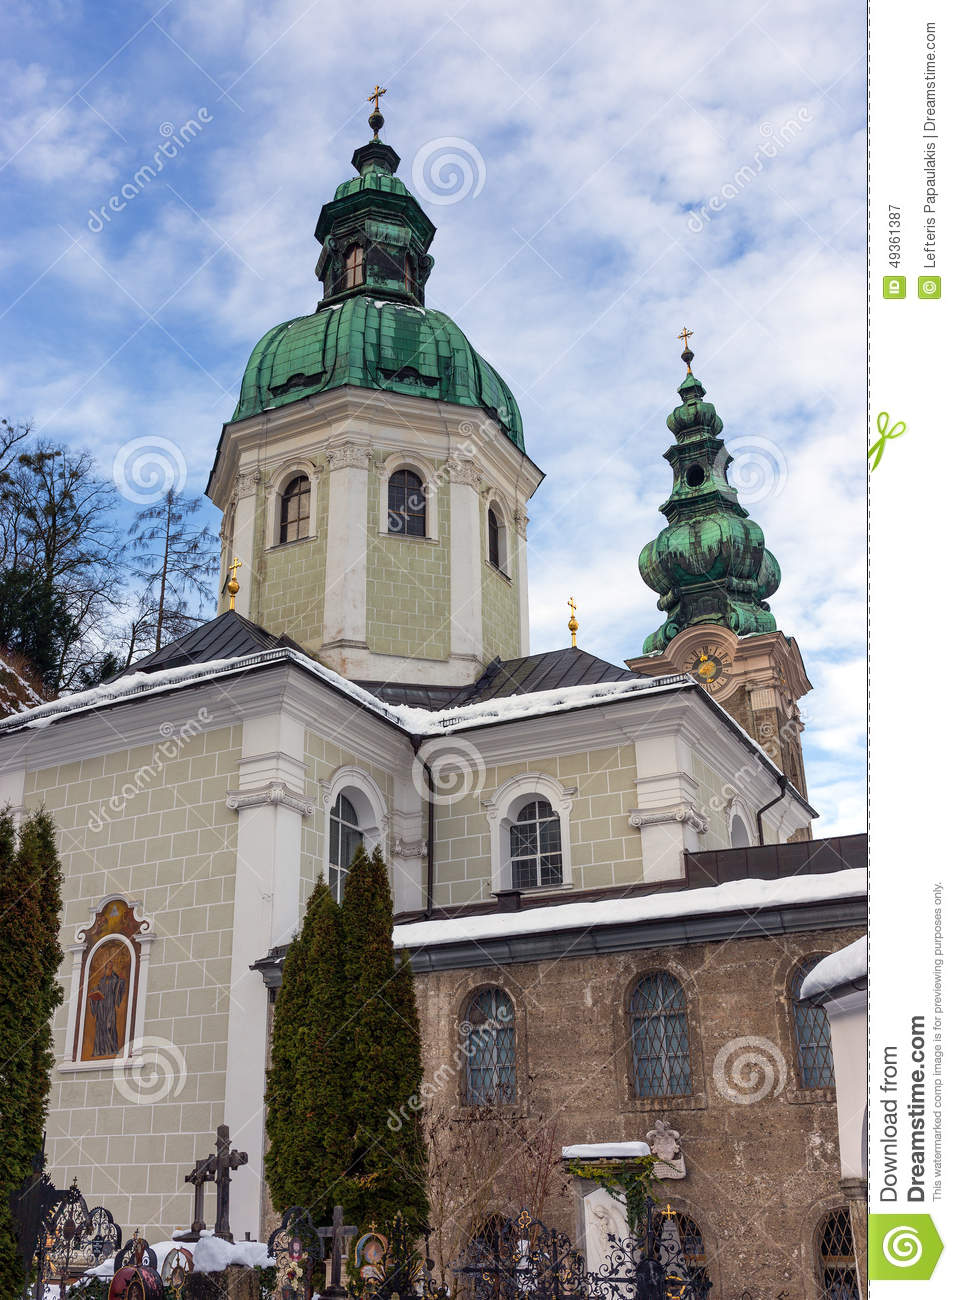 St. Peter Abbey Church, Salzburg, Austria Stock Photo.